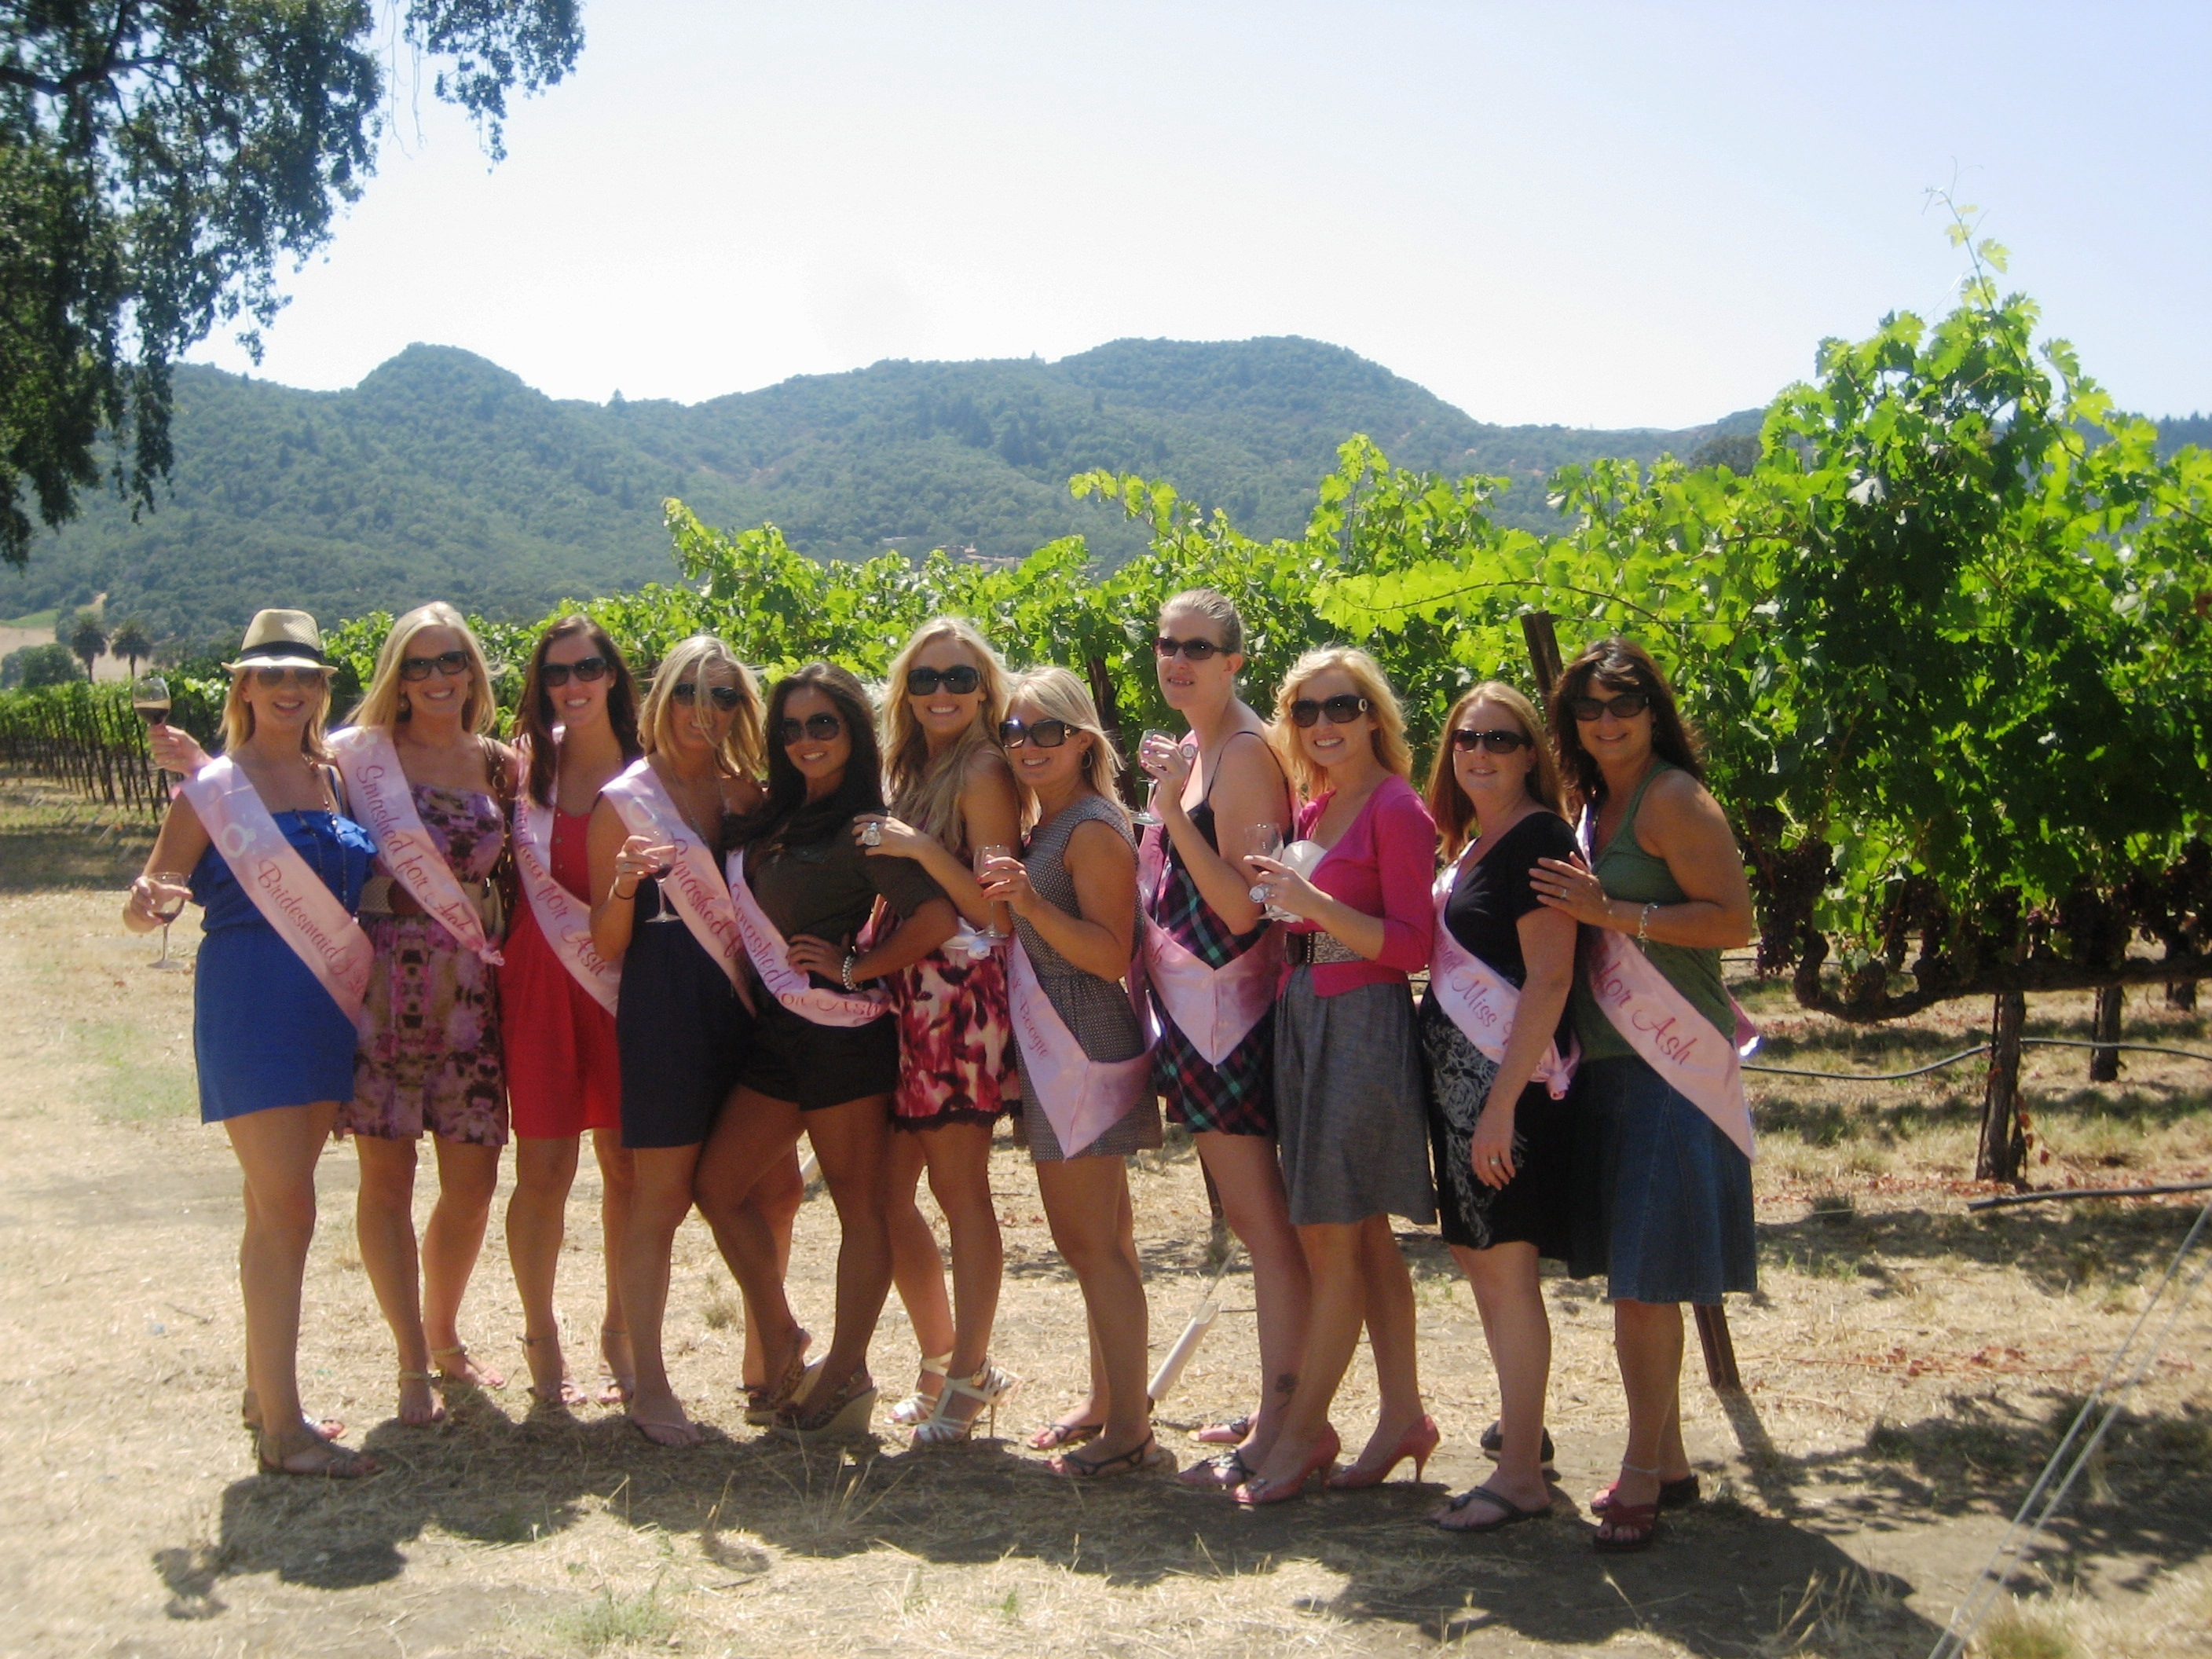 pink, Party, Bachelorette, Wine, Napa, Sashes, Tasting